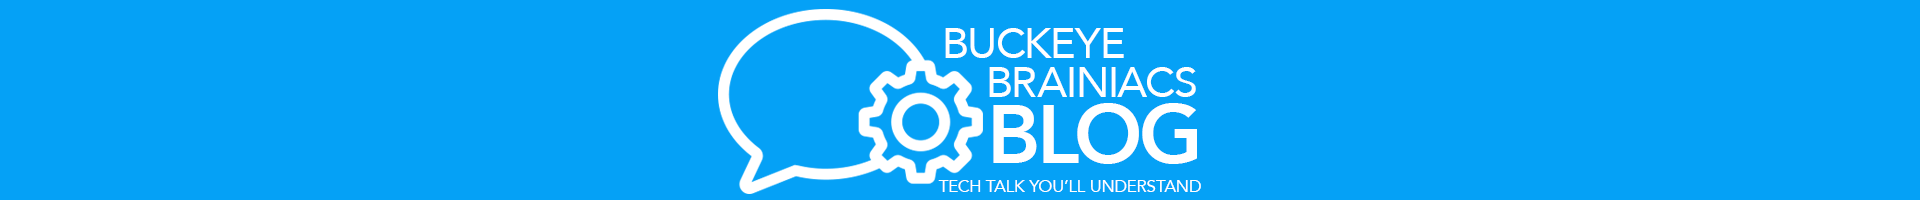 Buckeye Brainiacs Blog - Tech Talk You'll Understand